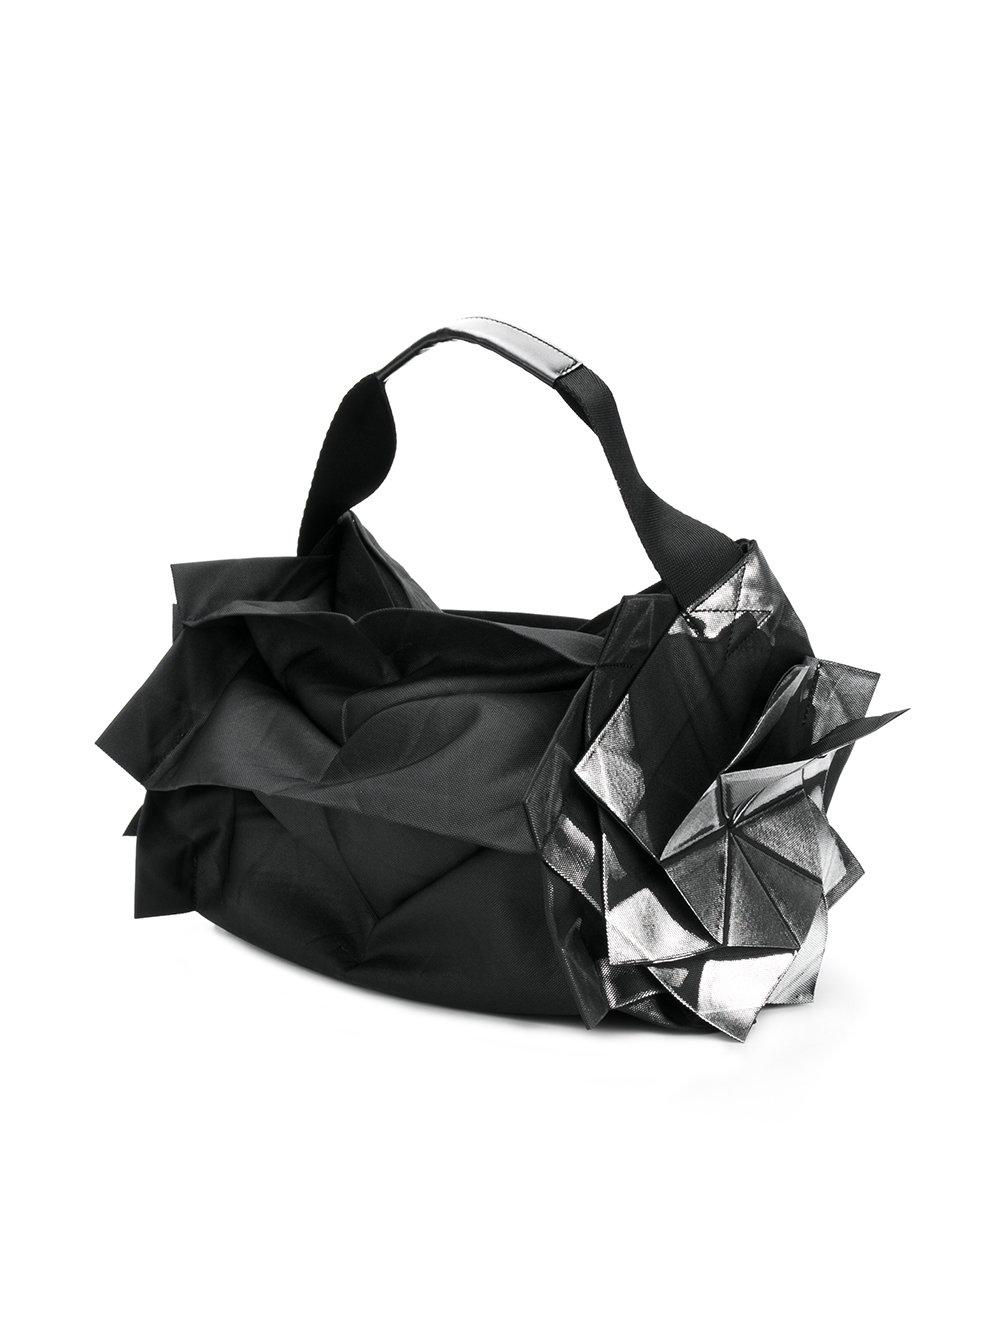 132 5. Issey Miyake Synthetic Structured Metallic Detail Tote Bag in Black